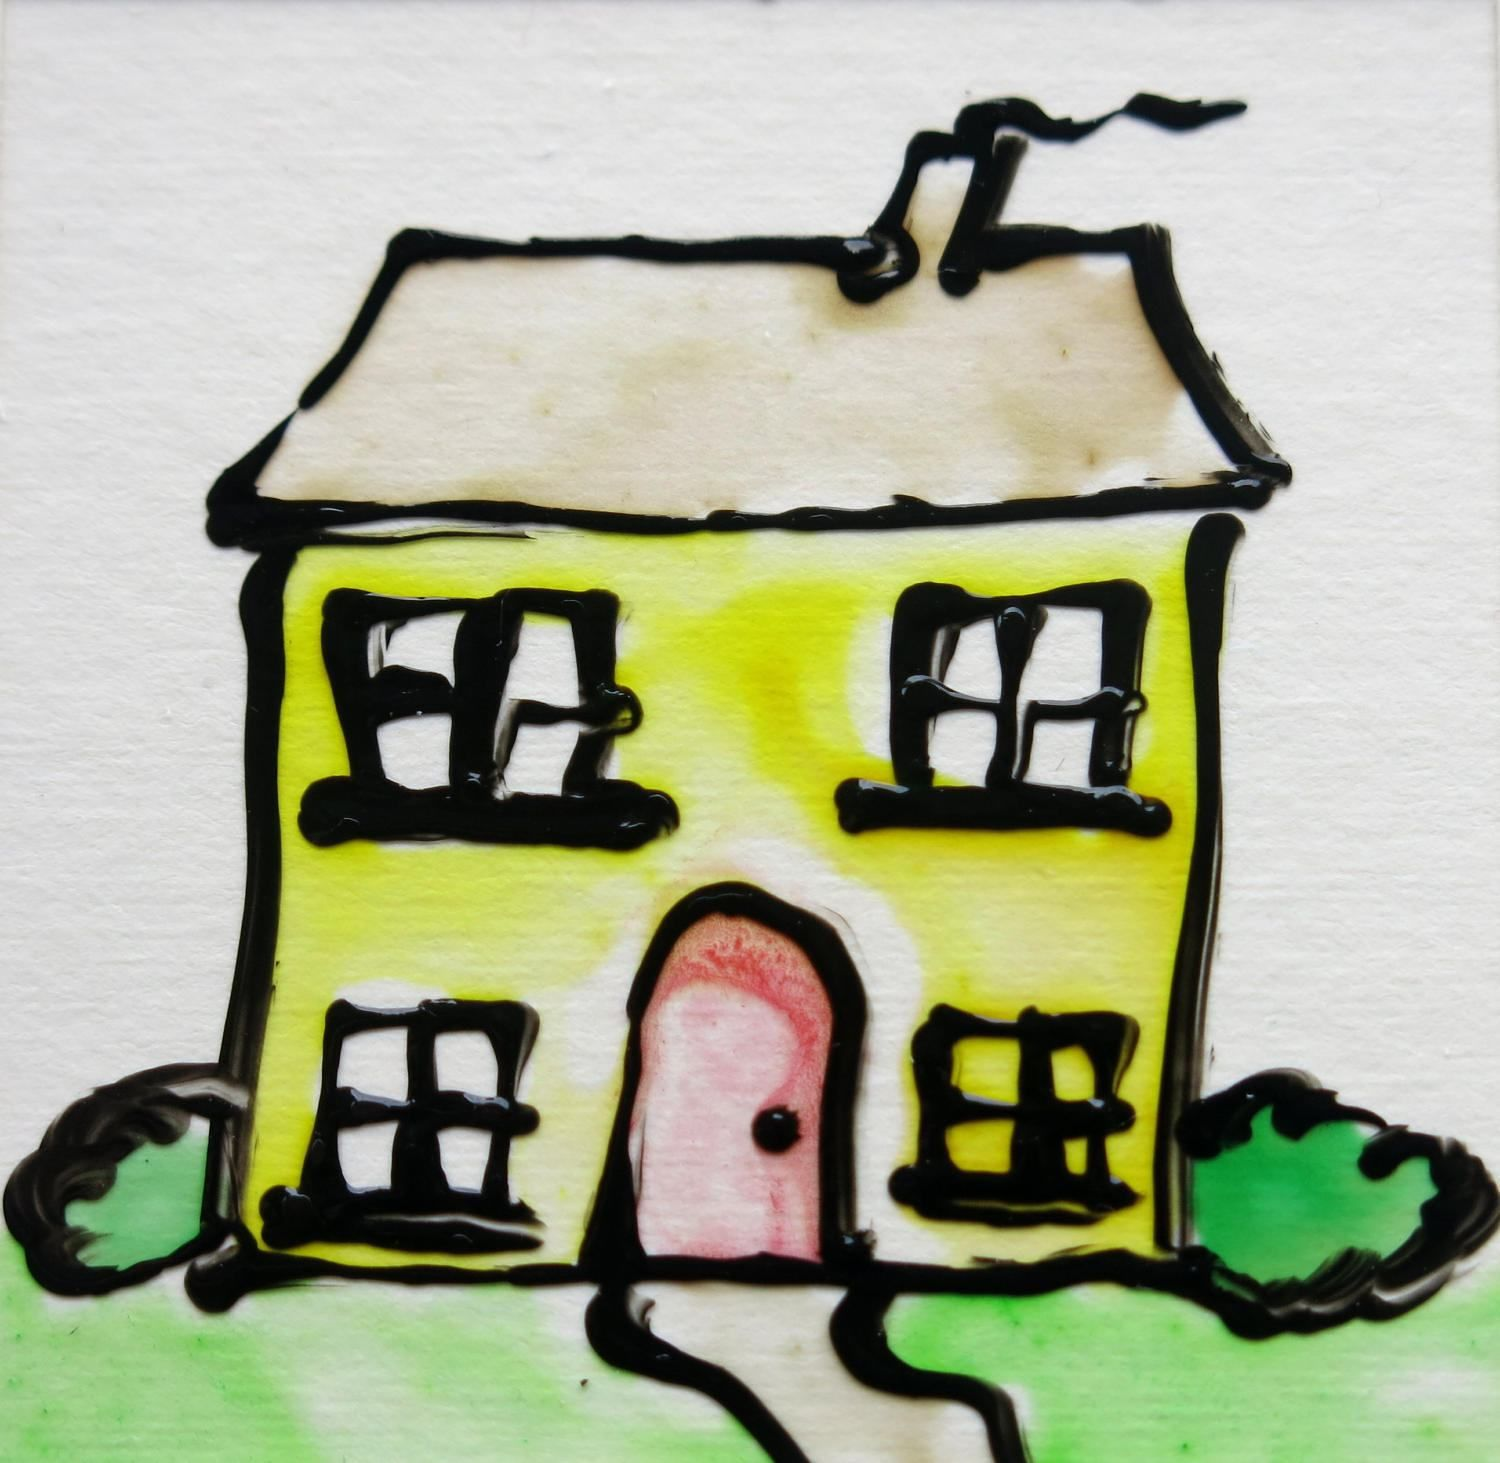 New home card new house card greeting card birthday card new home card new house card greeting card birthday card blank card house card handmade glass painted card uk seller kristyandbryce Gallery